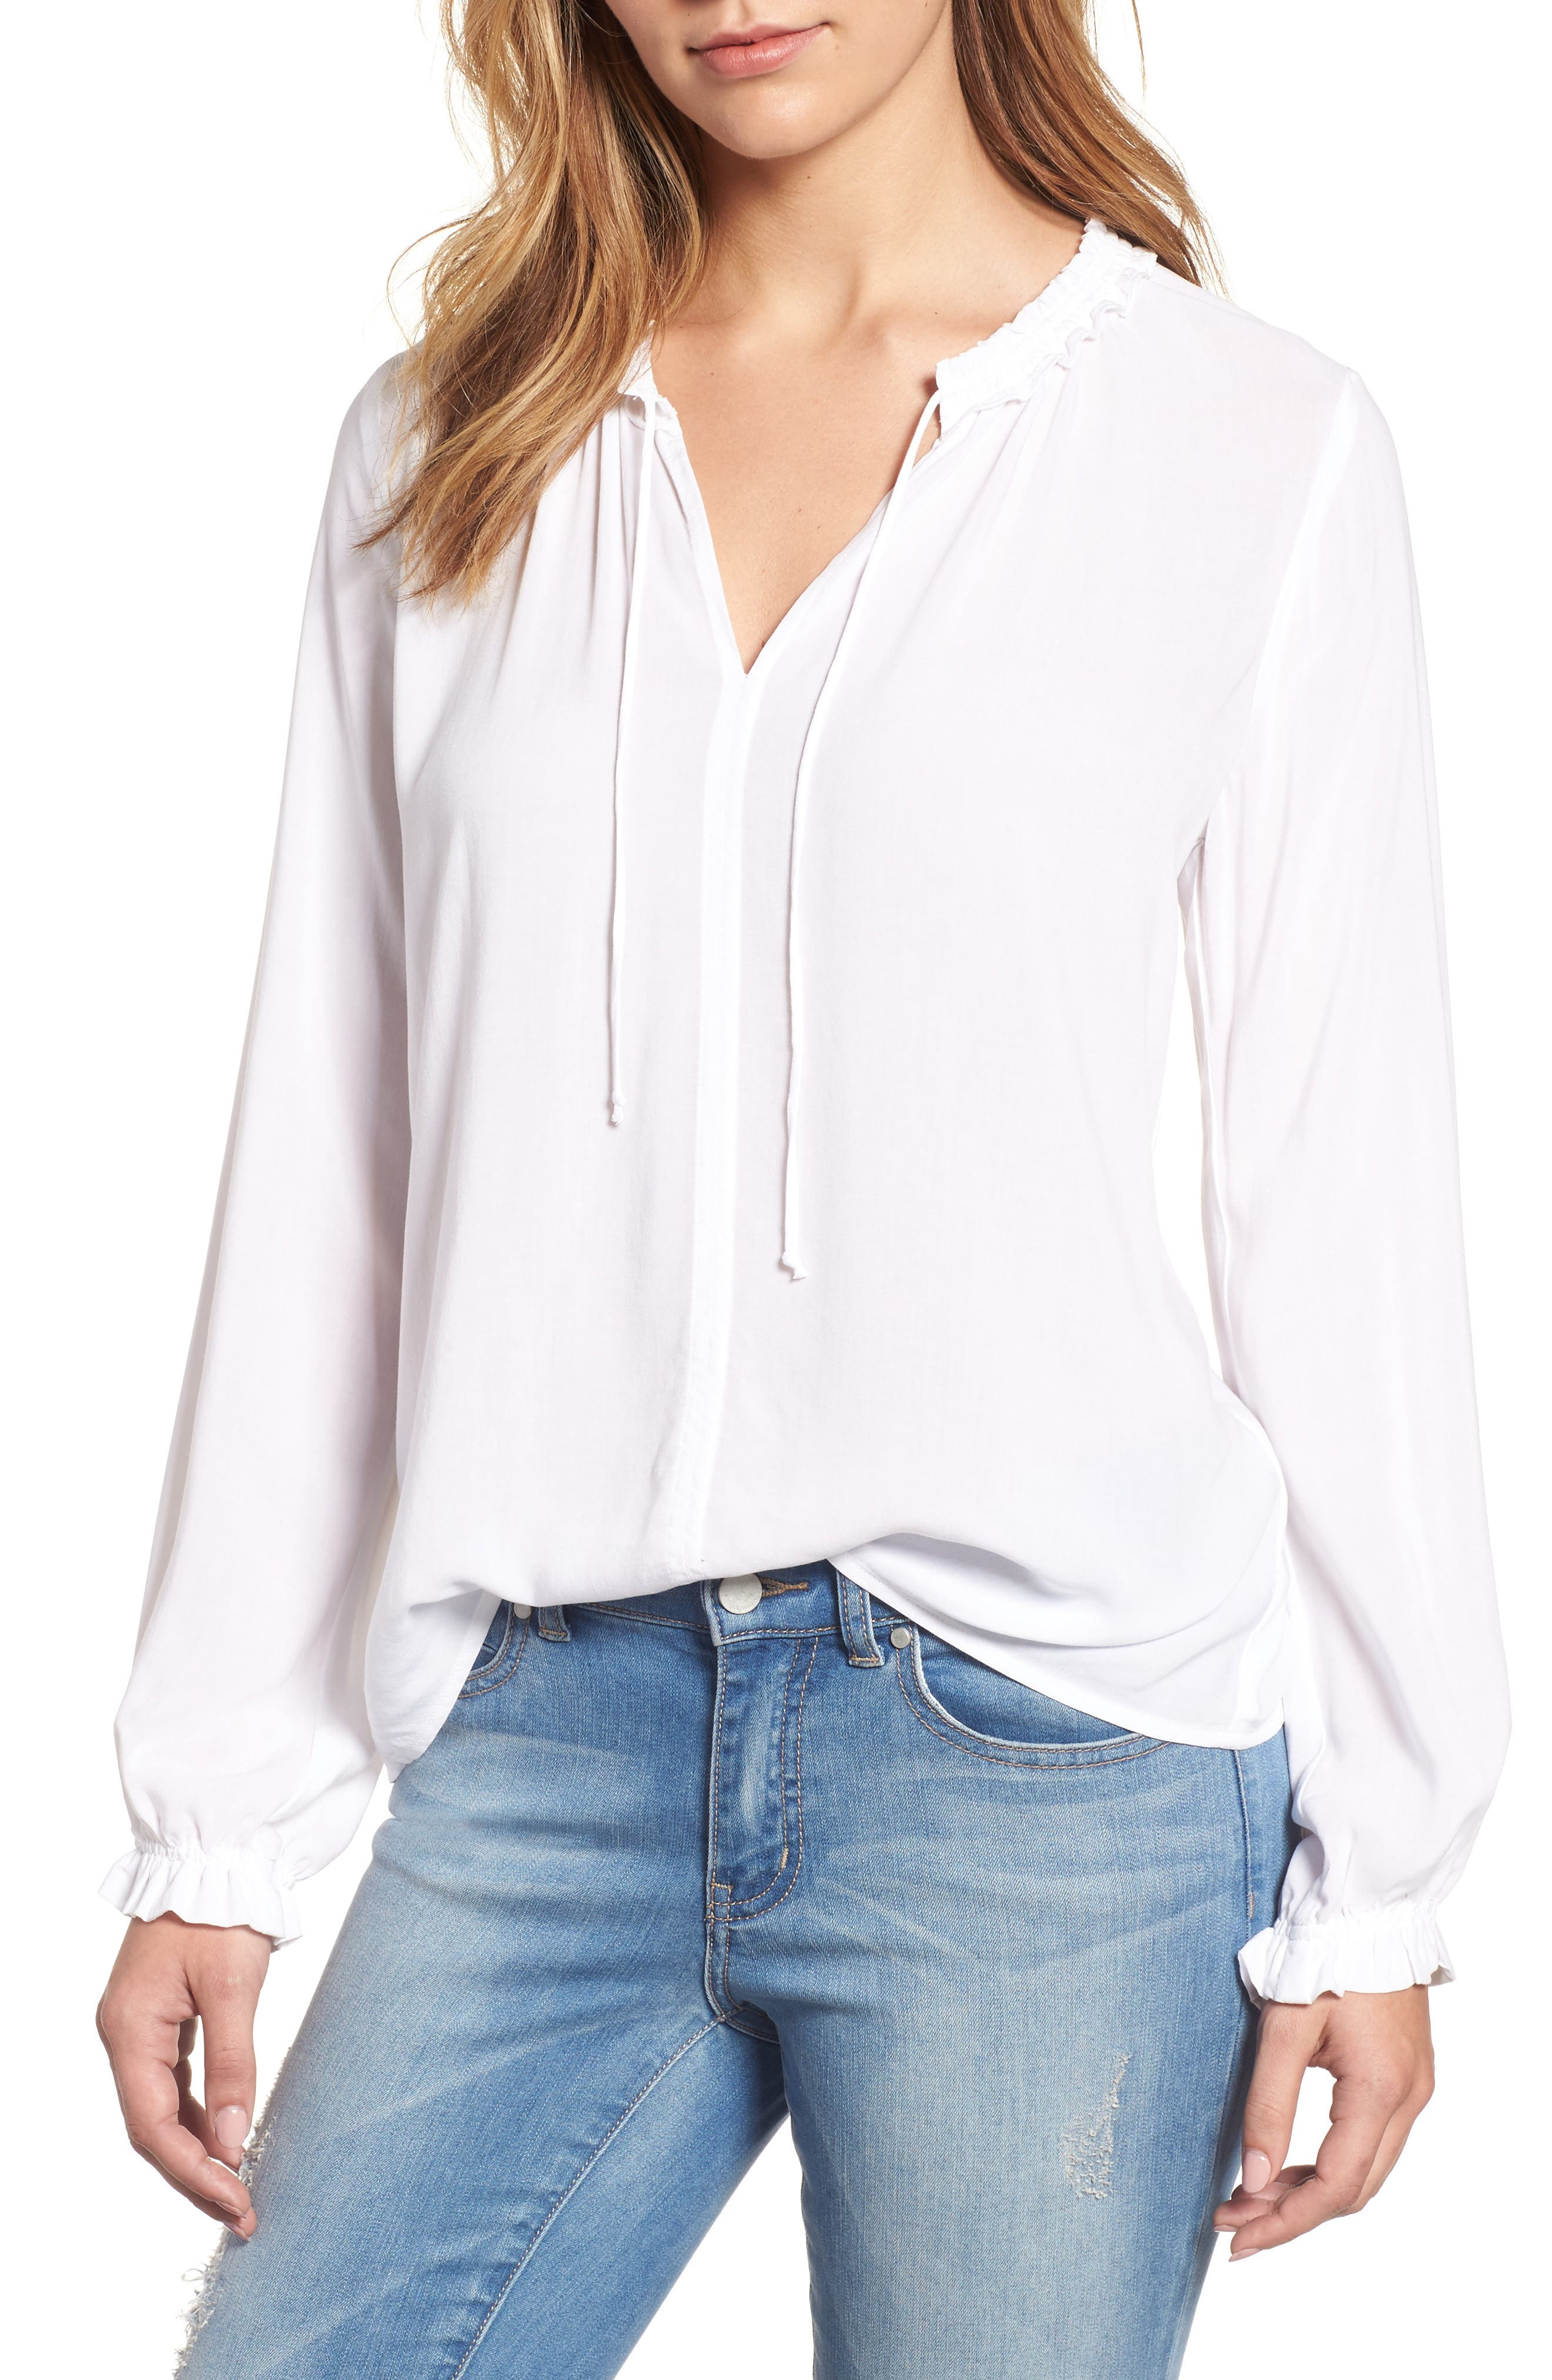 Velvet by Graham & Spencer Ruffle Tie Neck Top